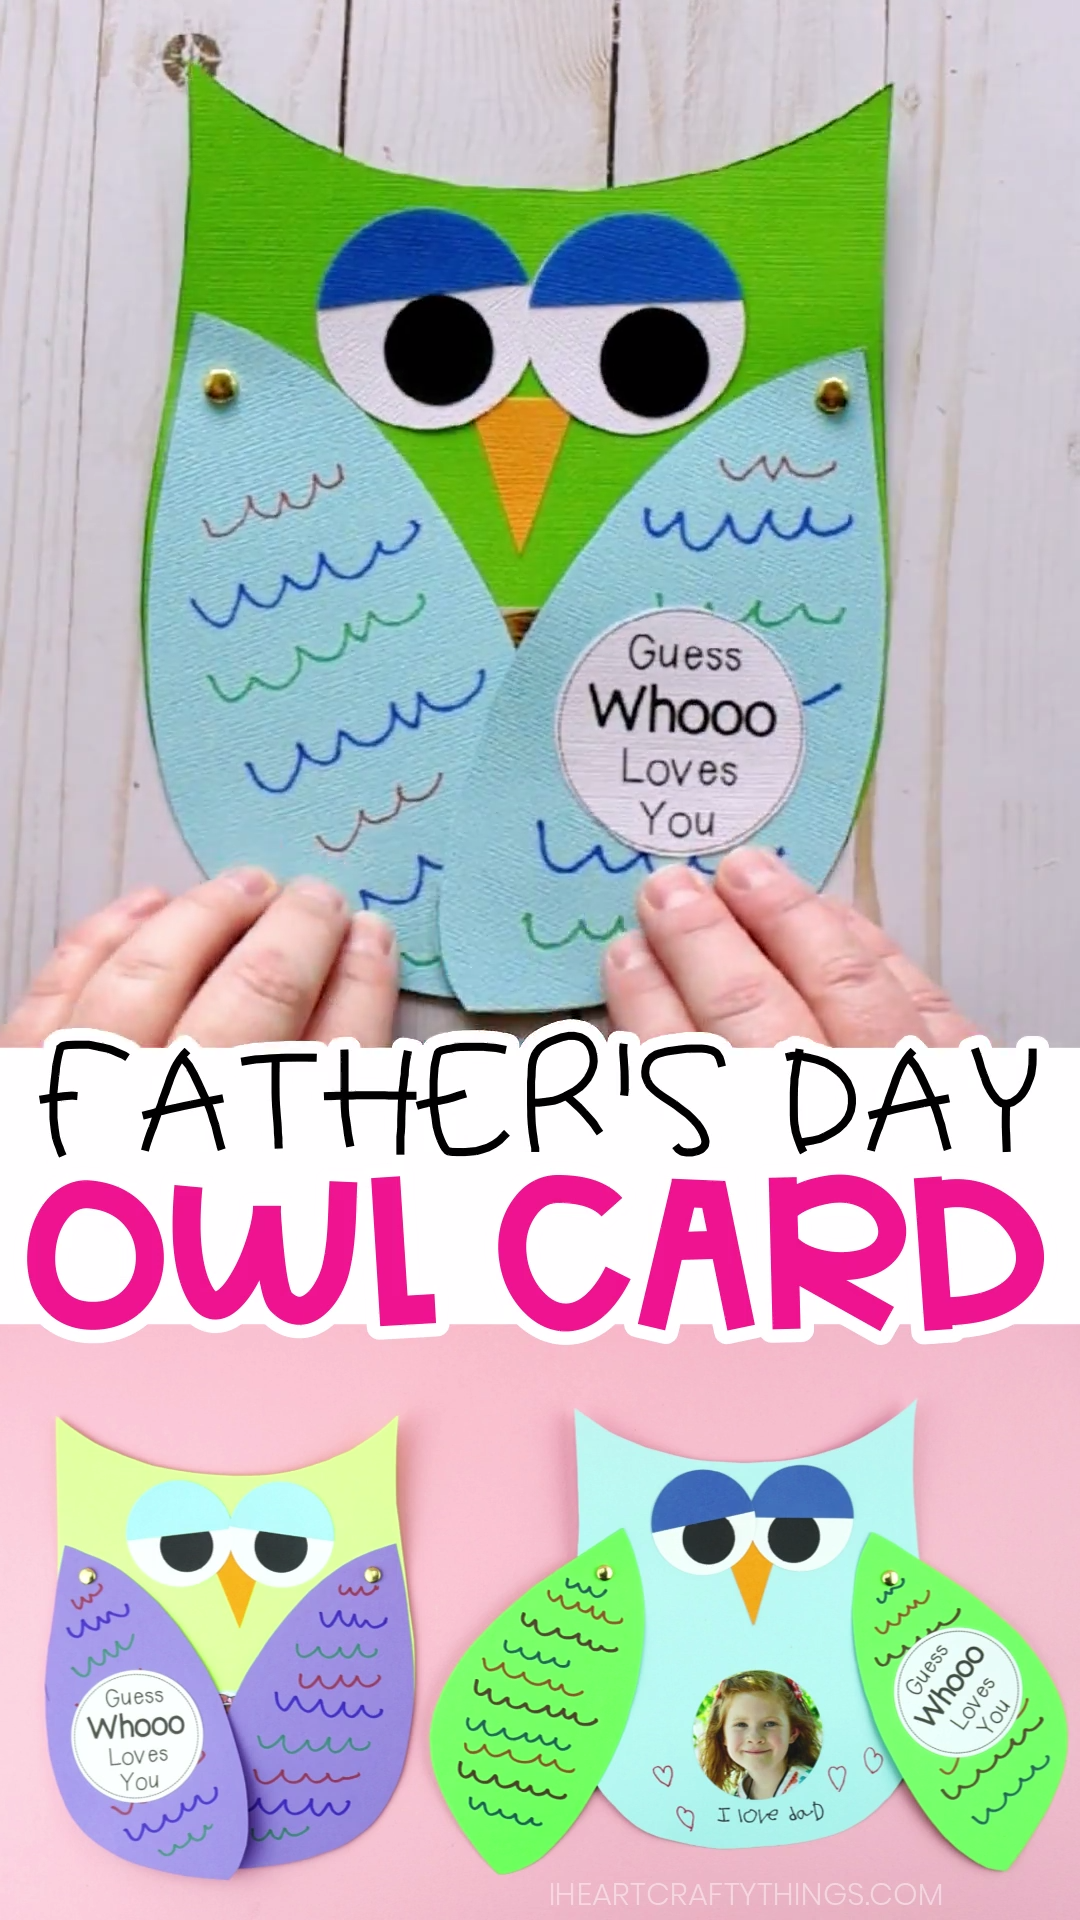 How to Make a Father's Day Owl Card